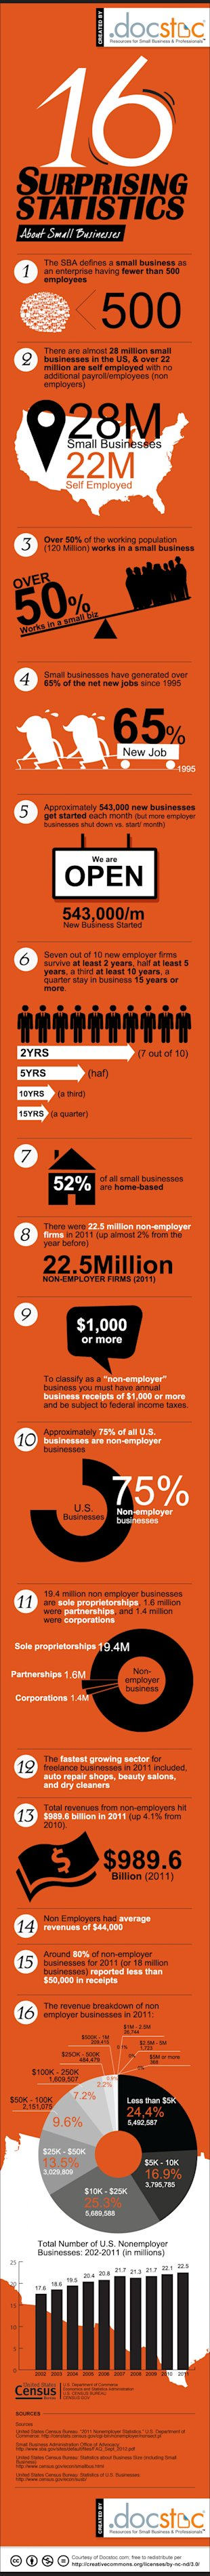 16 Surprising Small Business Statistics (Infographic) image the state of the us small businesses 522f68e9eec73 w1500